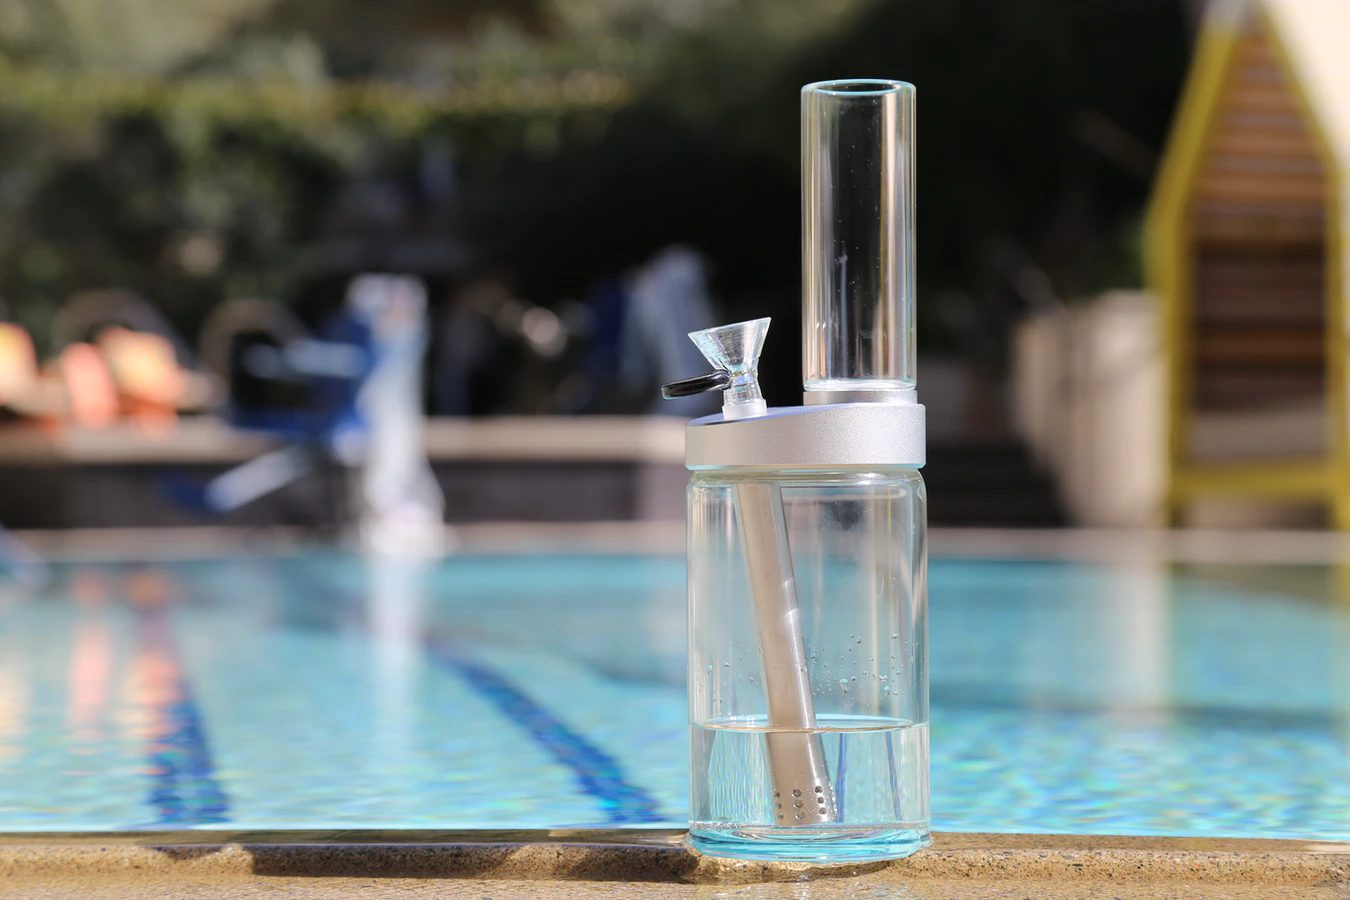 Bong by a pool for learning how to smoke wax